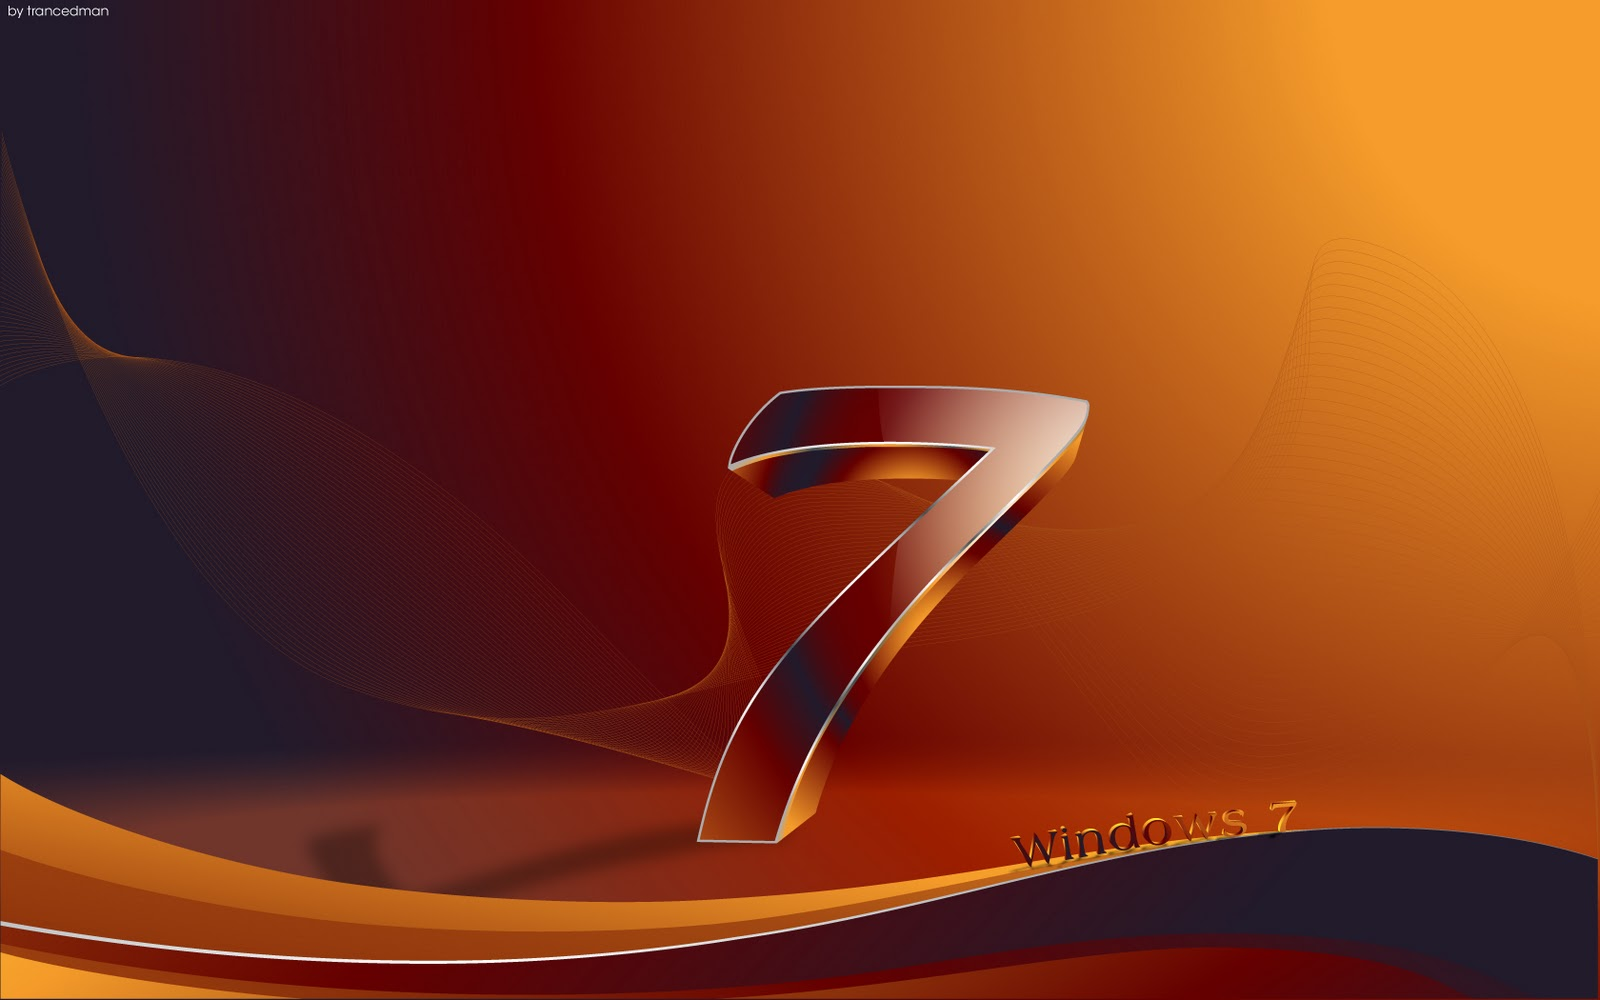 how to download windows 7 from microsoft